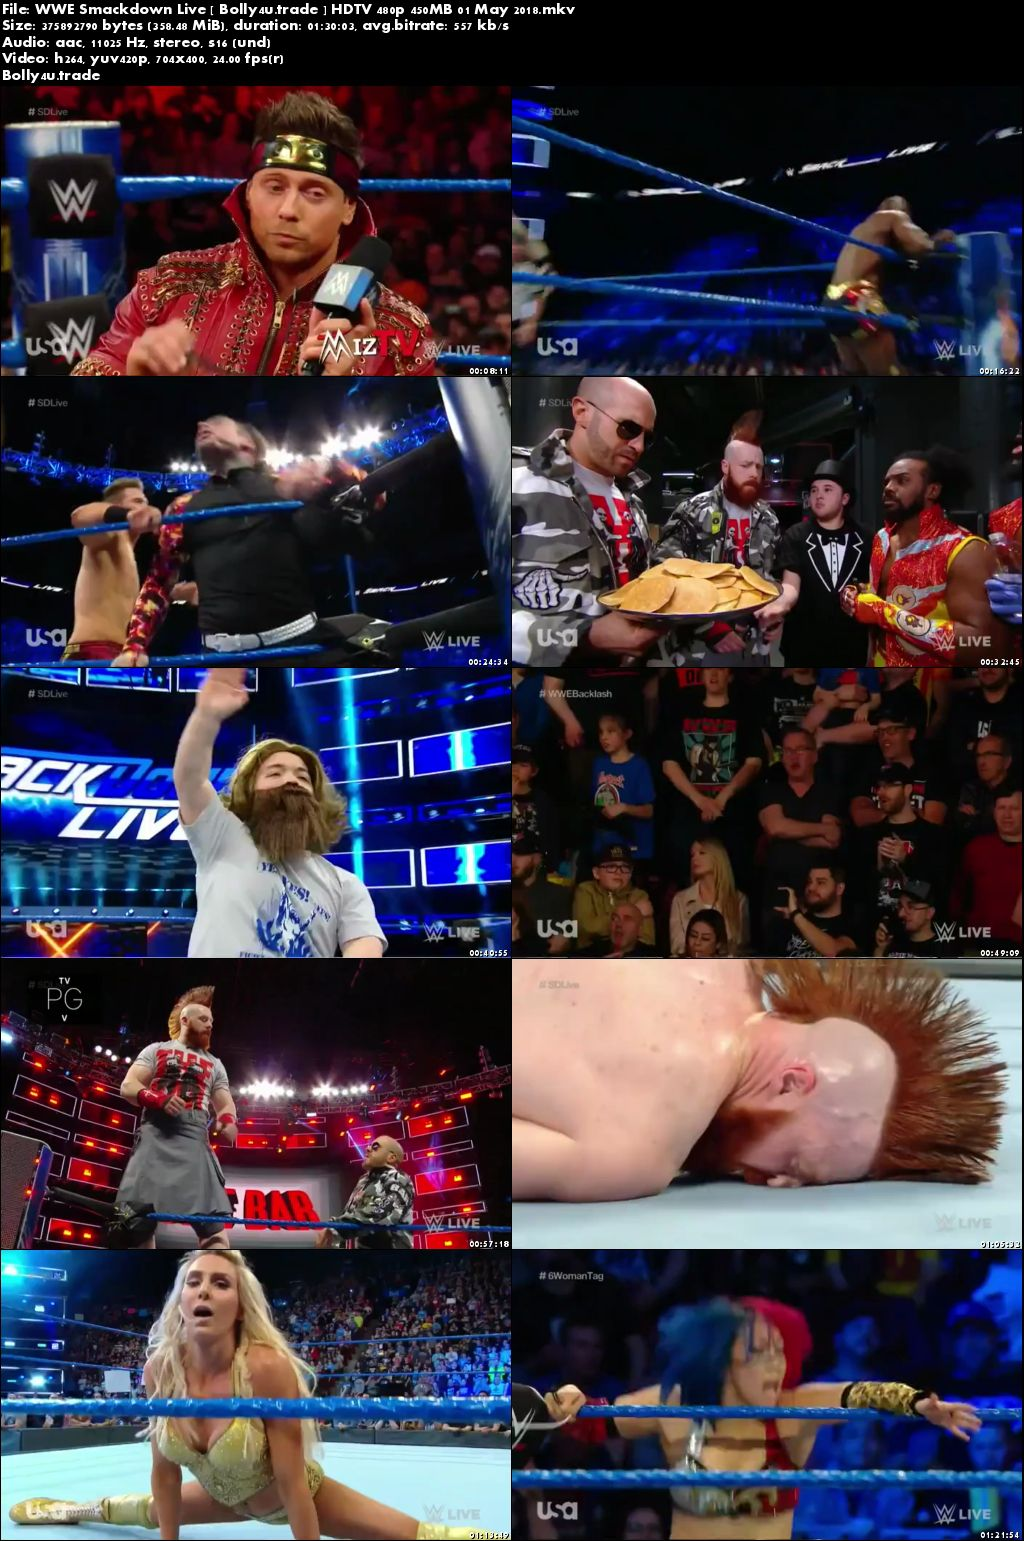 WWE Smackdown Live HDTV 480p 350MB 01 May 2018 Download